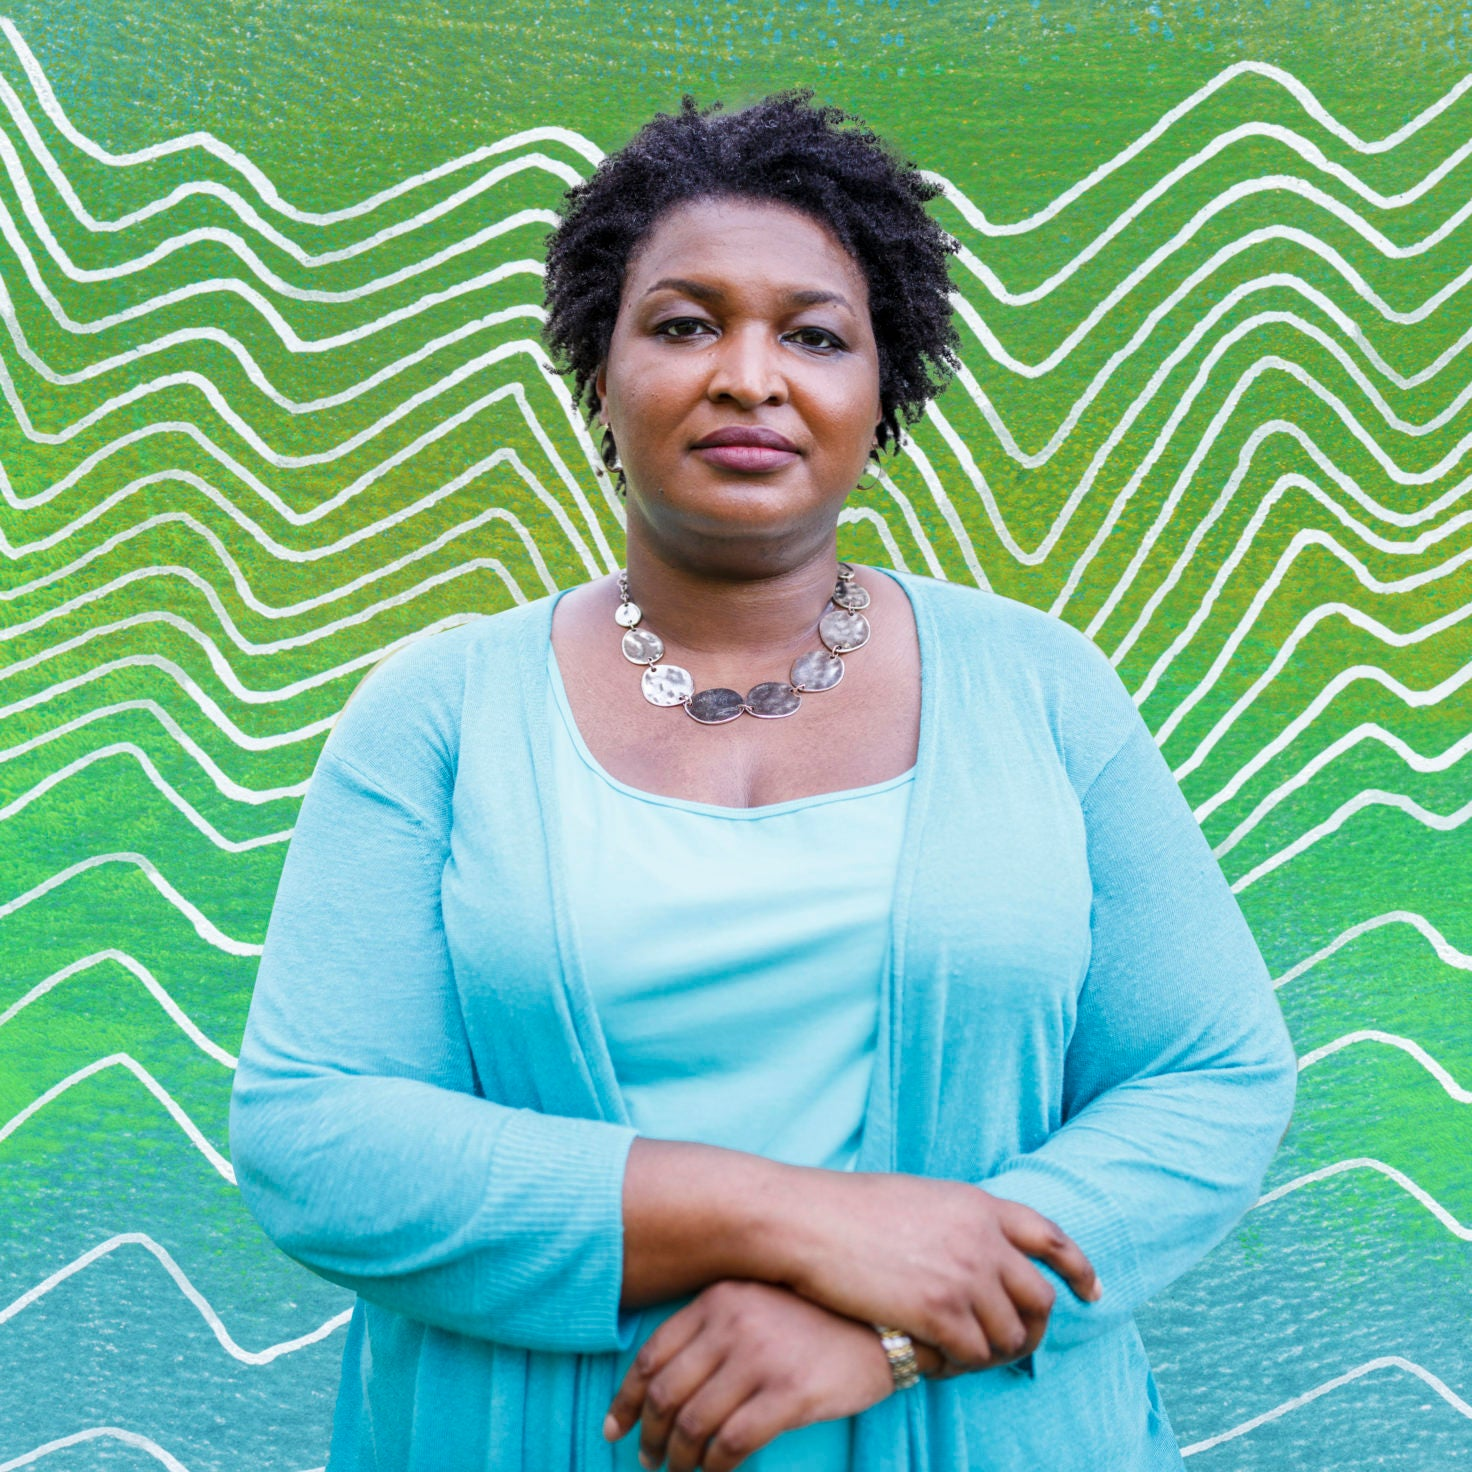 Stacey Abrams Says She's Committed To Improving The Lives Of All Georgians